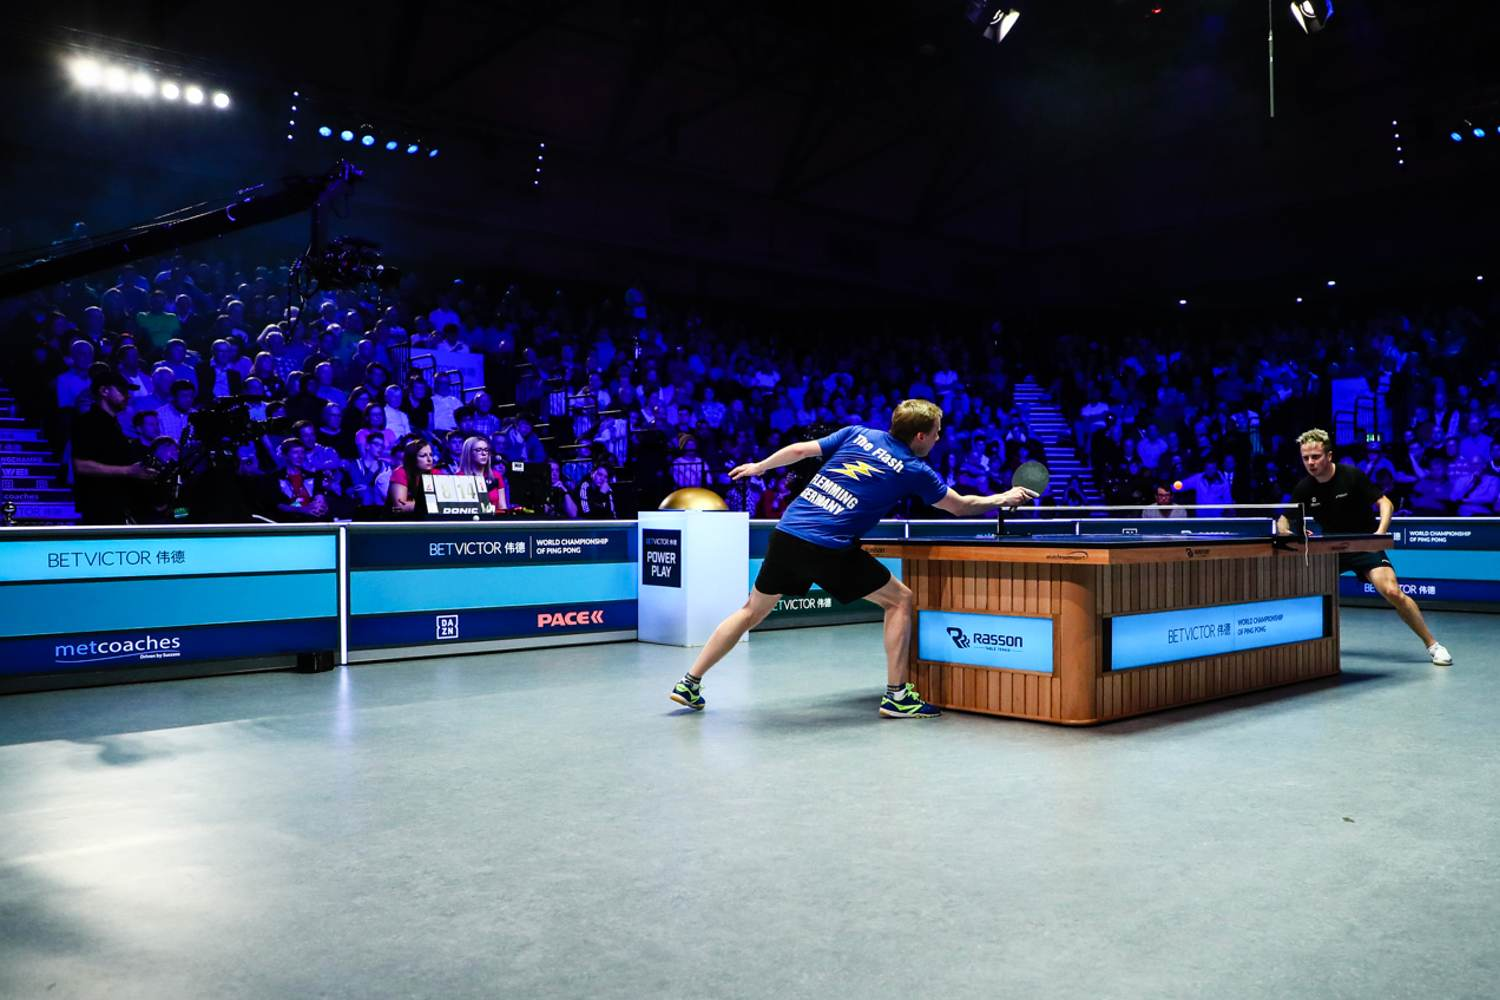 World championship of ping pong betting on sports nba playoffs 2021 betting odds